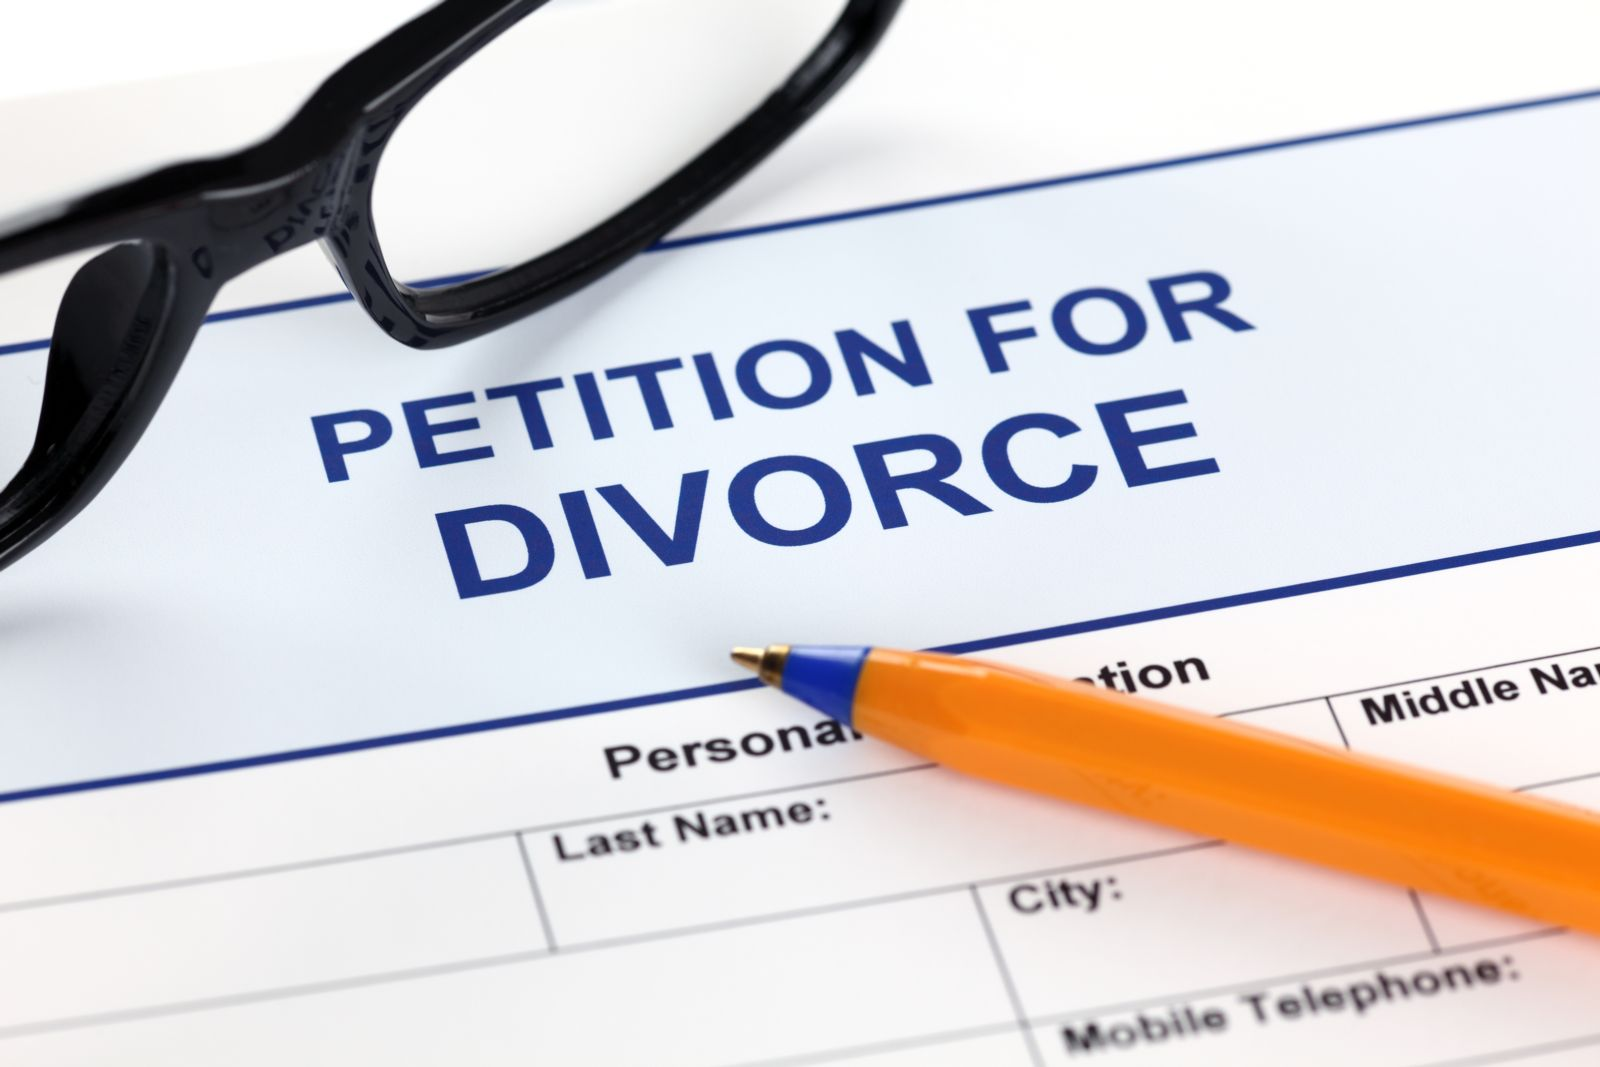 New Mexico Petition for Divorce form along with glasses and pen.